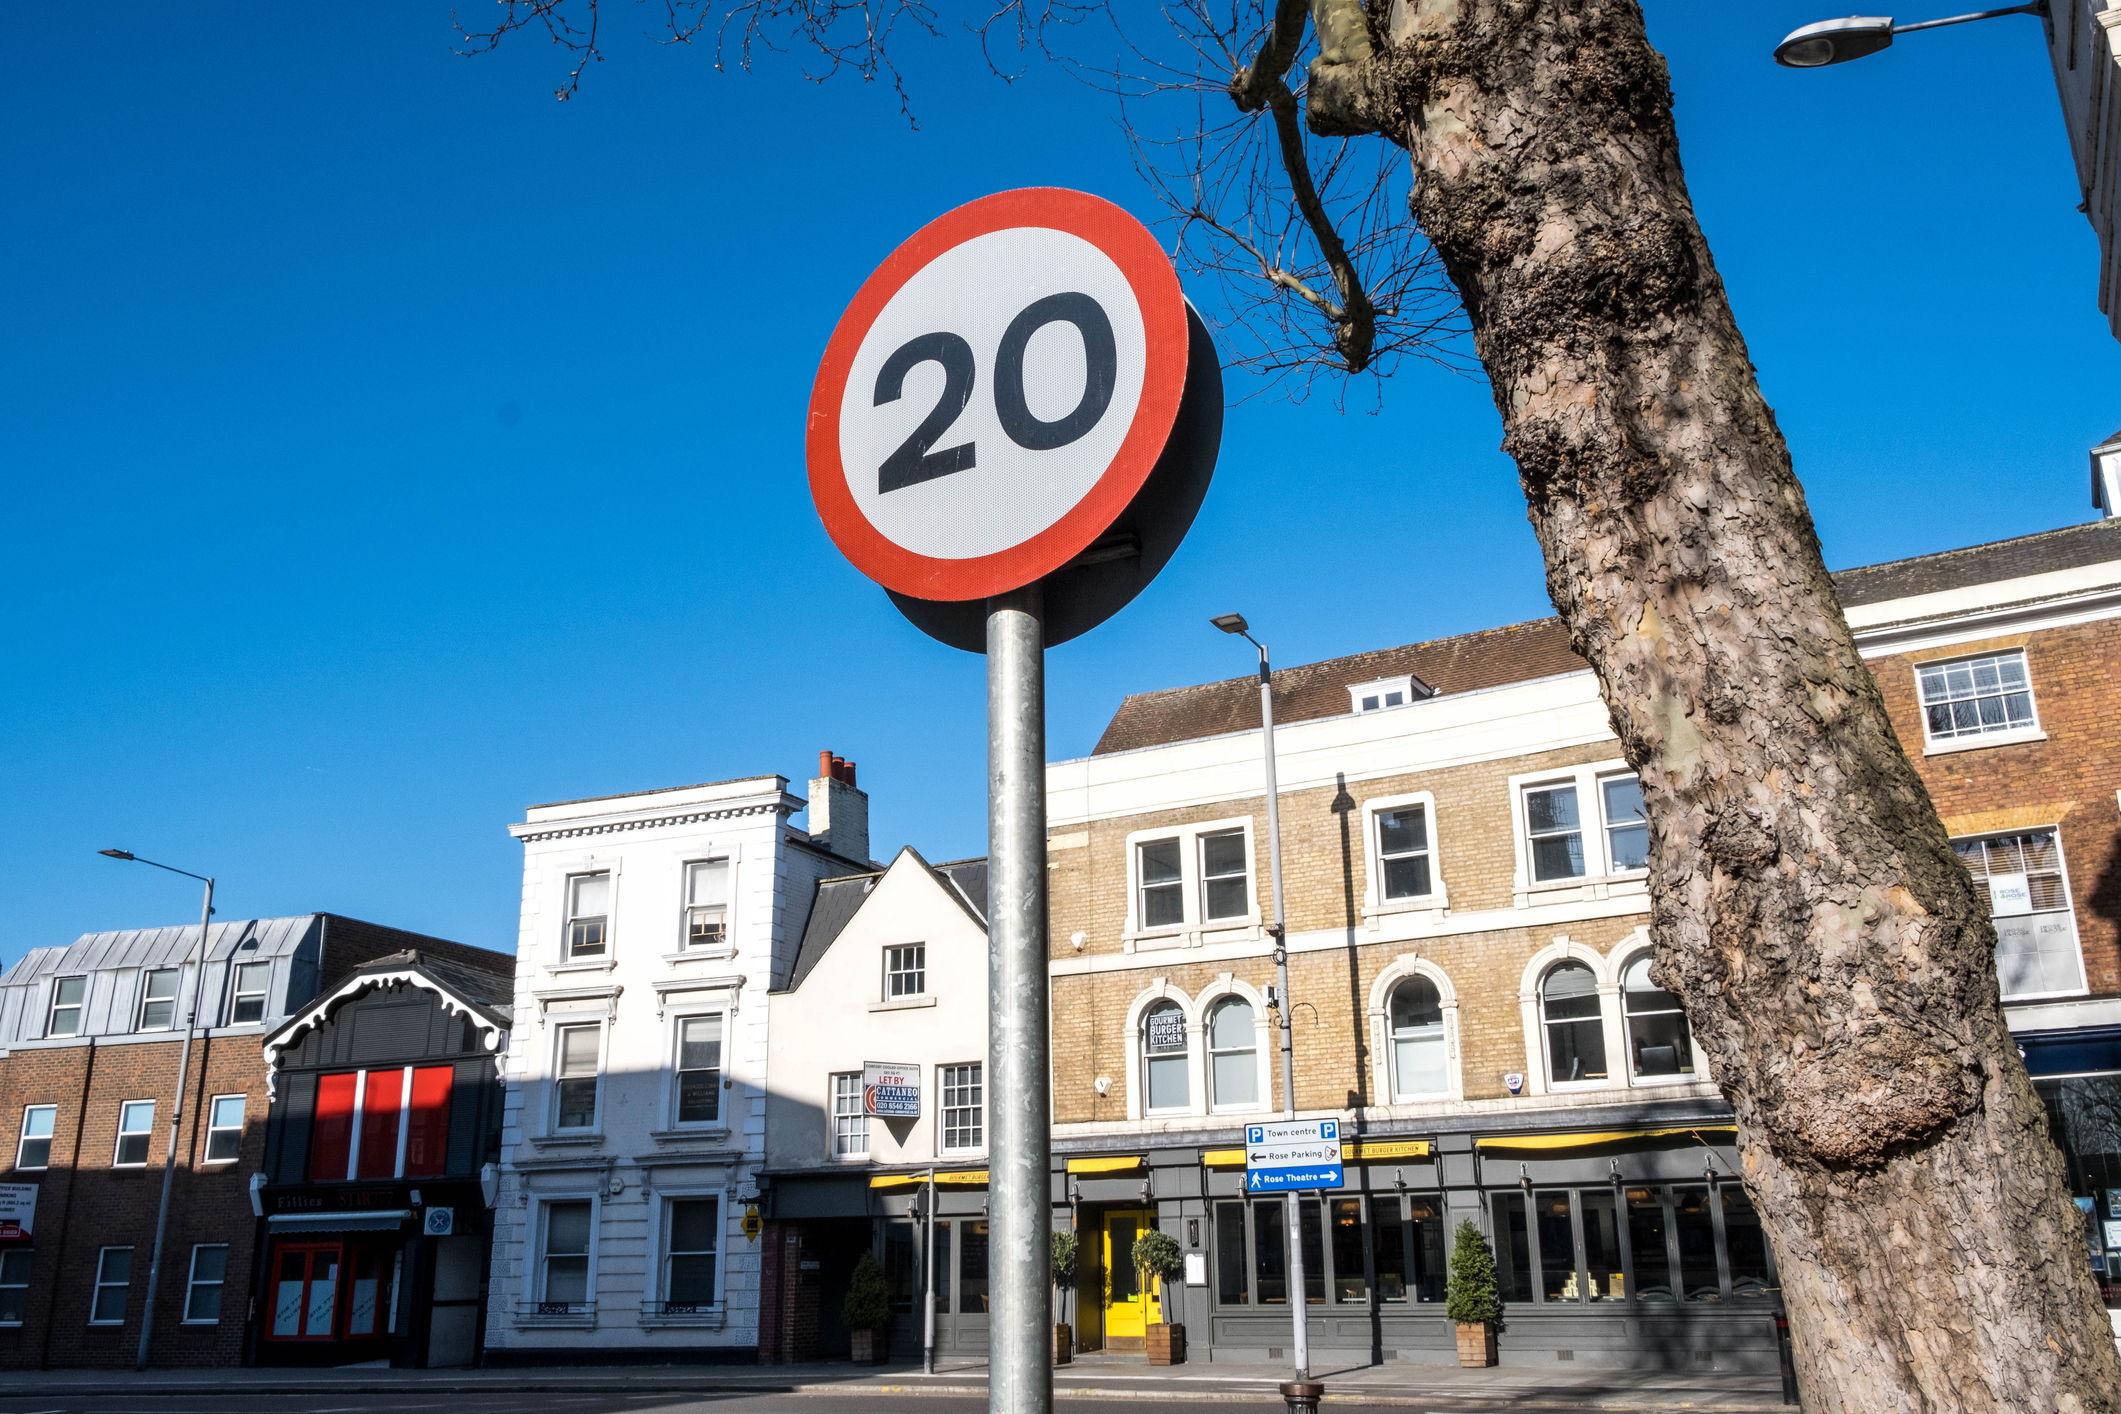 20mph Road Speed Limit Traffic Sign Against A Blue Sky With No People